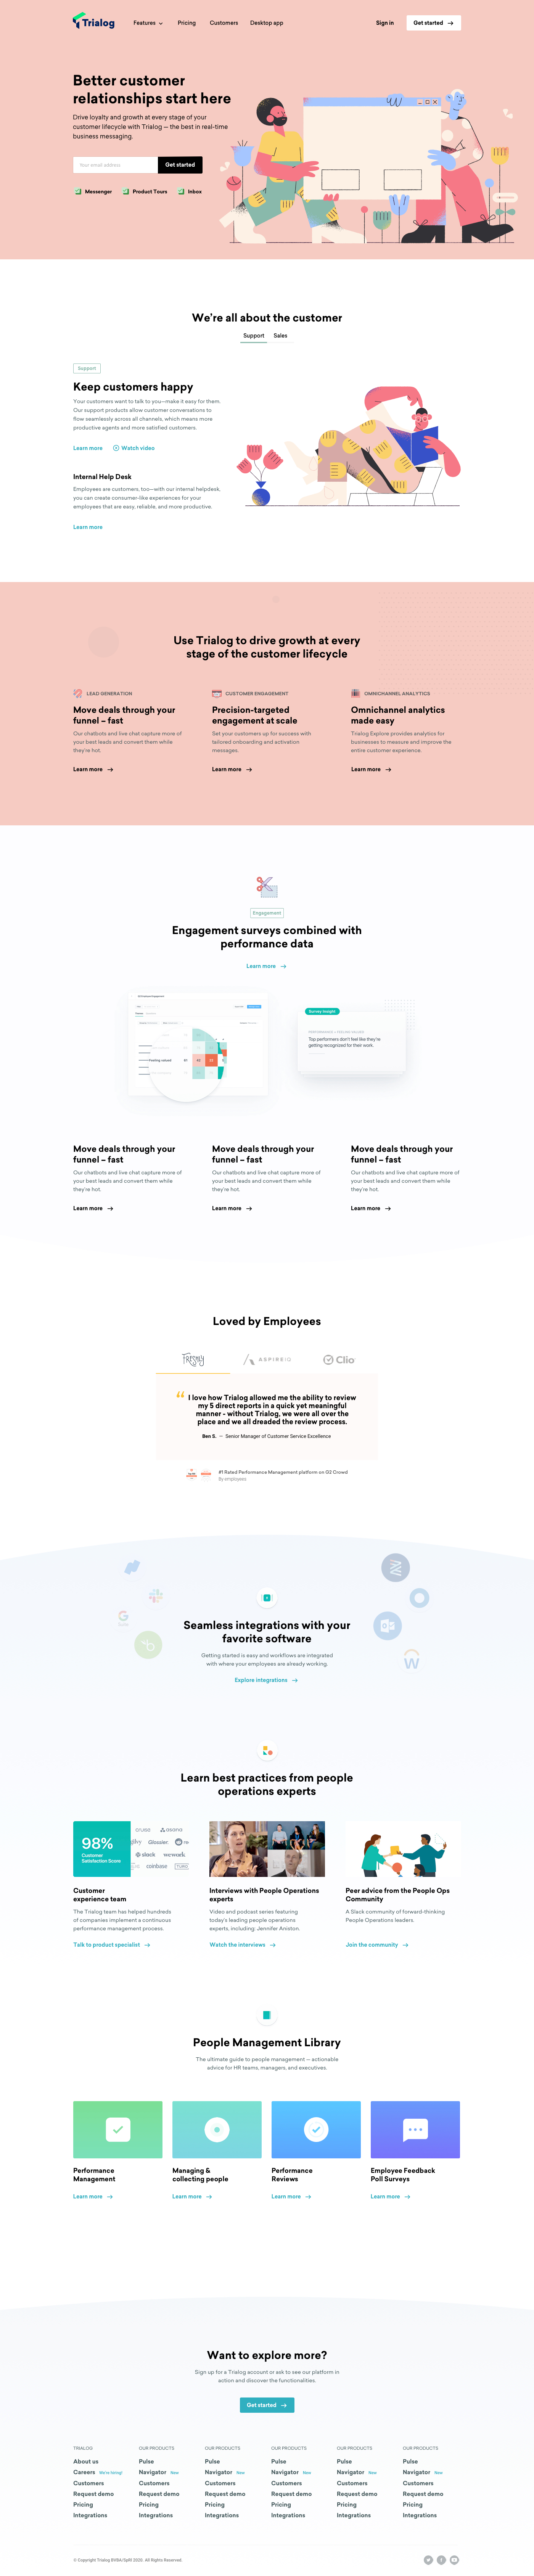 Trialog SaaS Landing Page for Sketch - We are excited to share a free Sketch Template, Trialog SaaS Theme. It is a well-crafted sketch theme that can be downloaded for free.